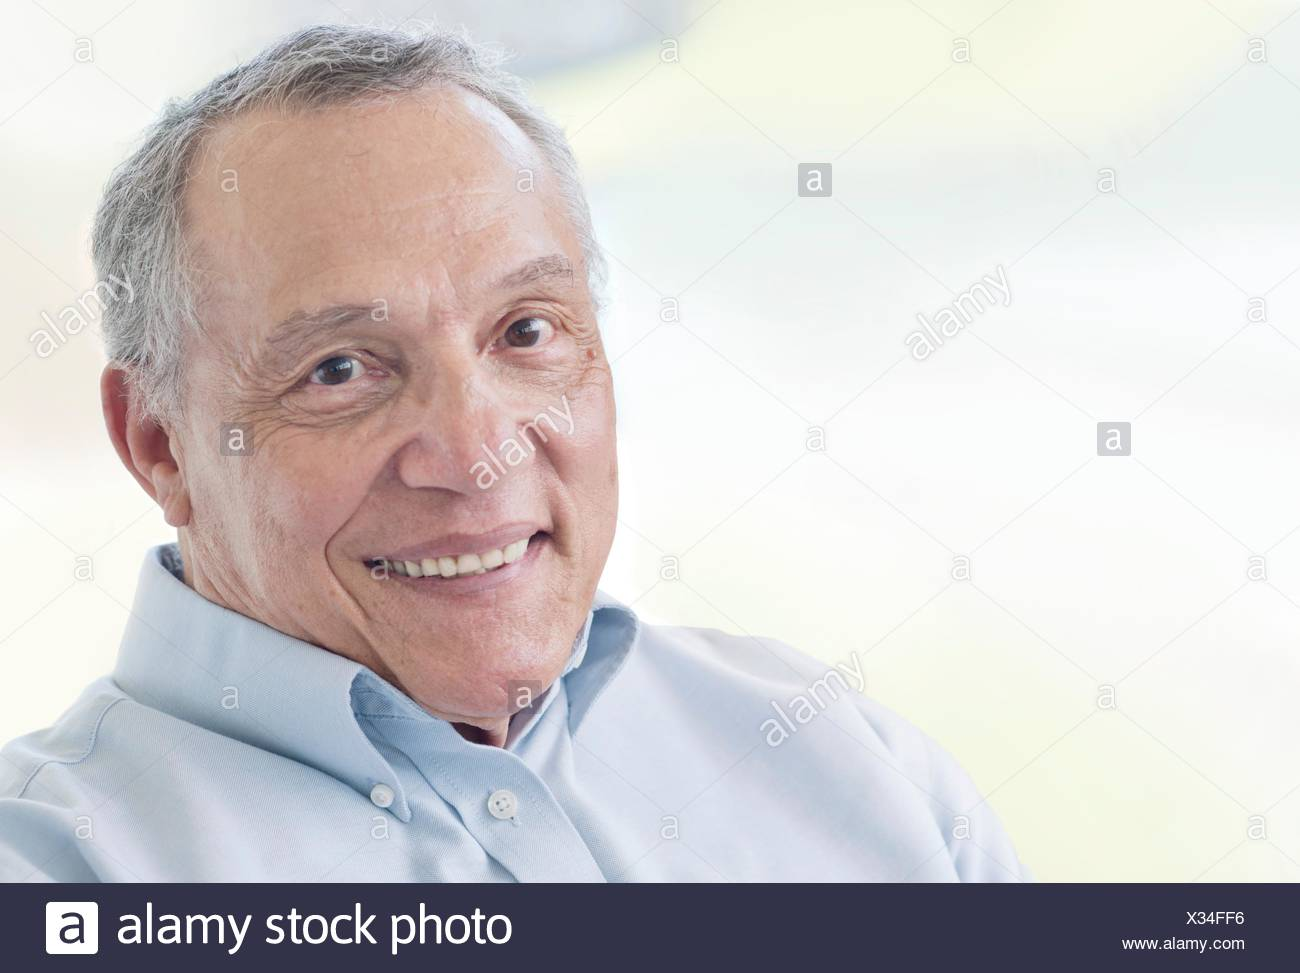 Senior man smiling towards camera. - Stock Image